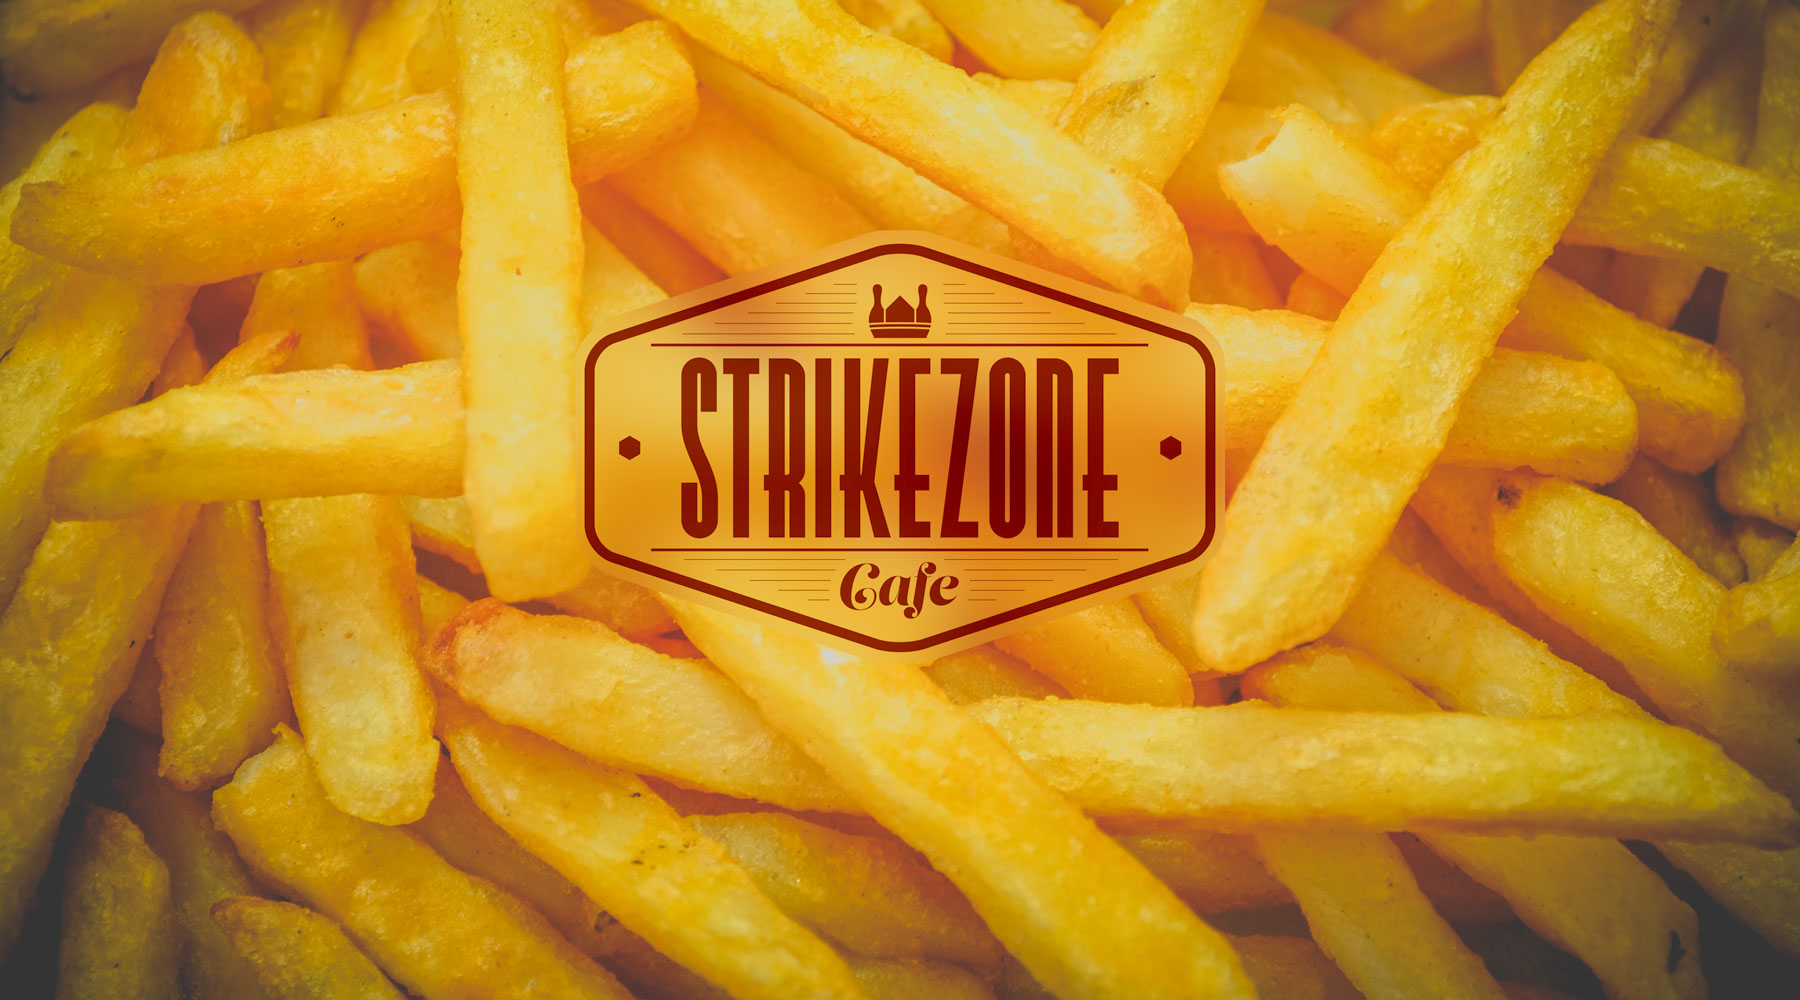 Strikezone Cafe logo on a bed of french fries